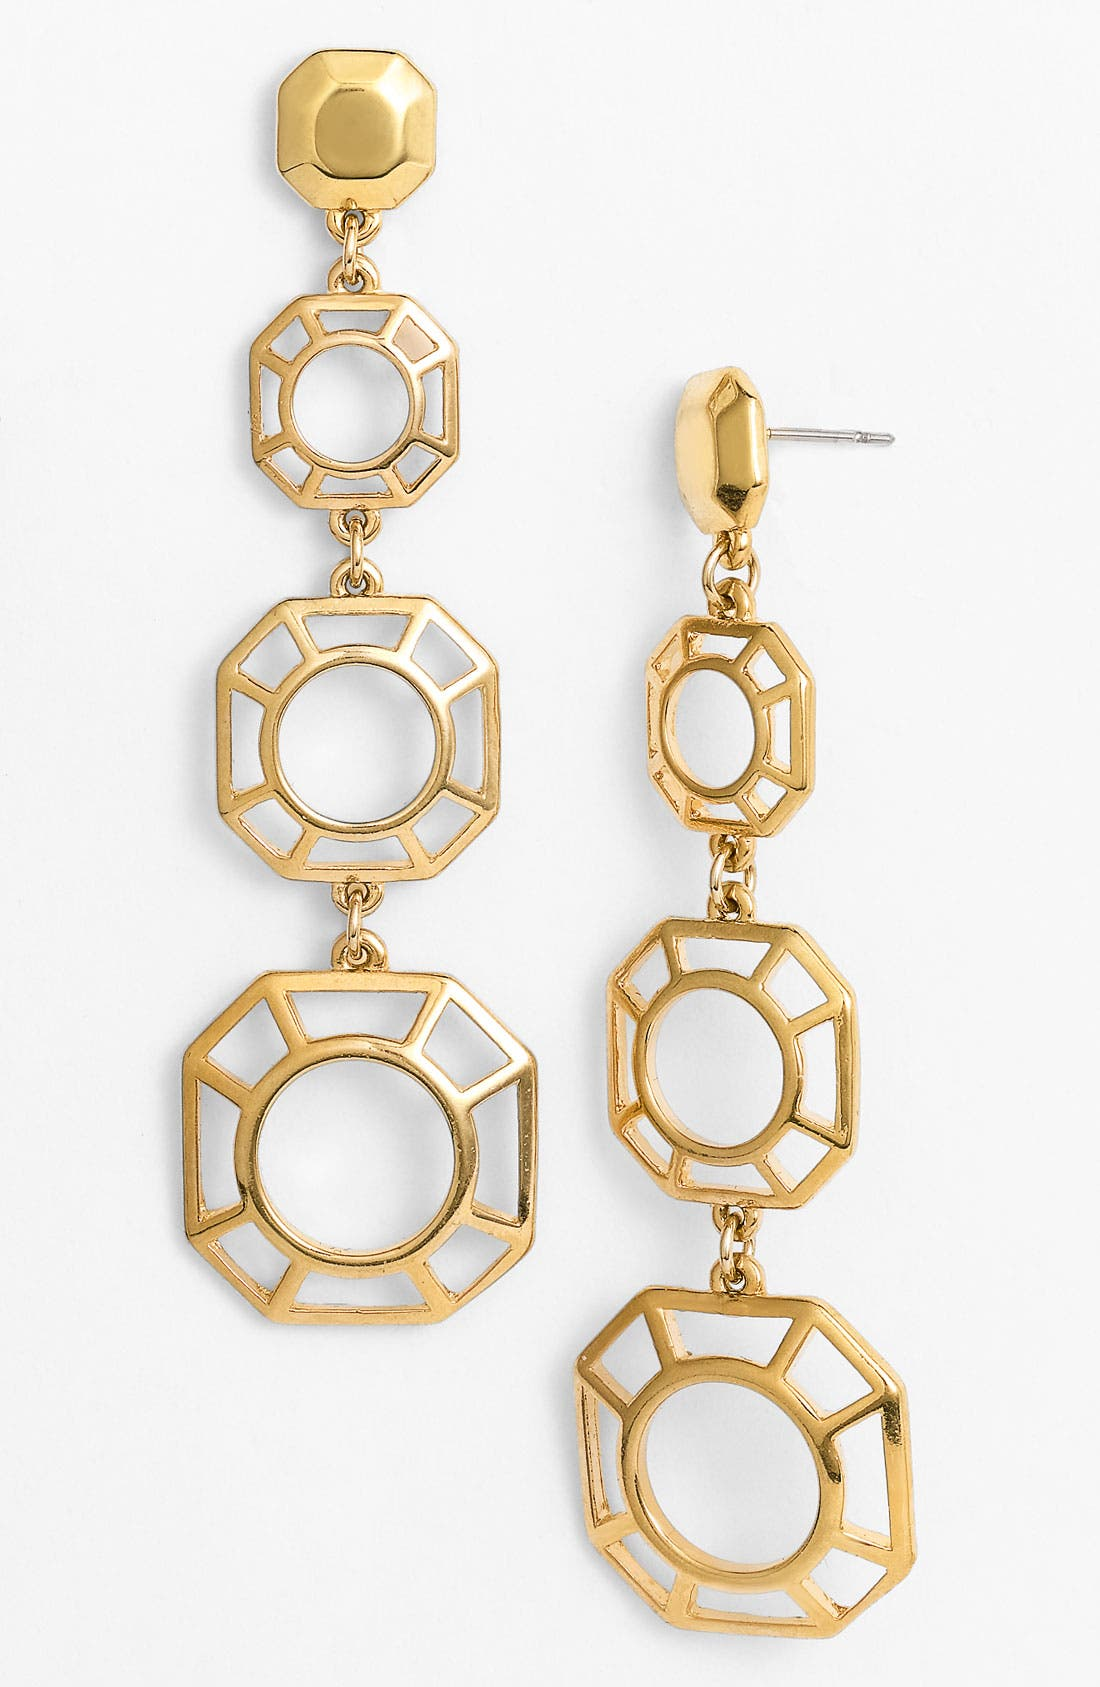 Alternate Image 1 Selected - Tory Burch 'Audrina' Linear Earrings